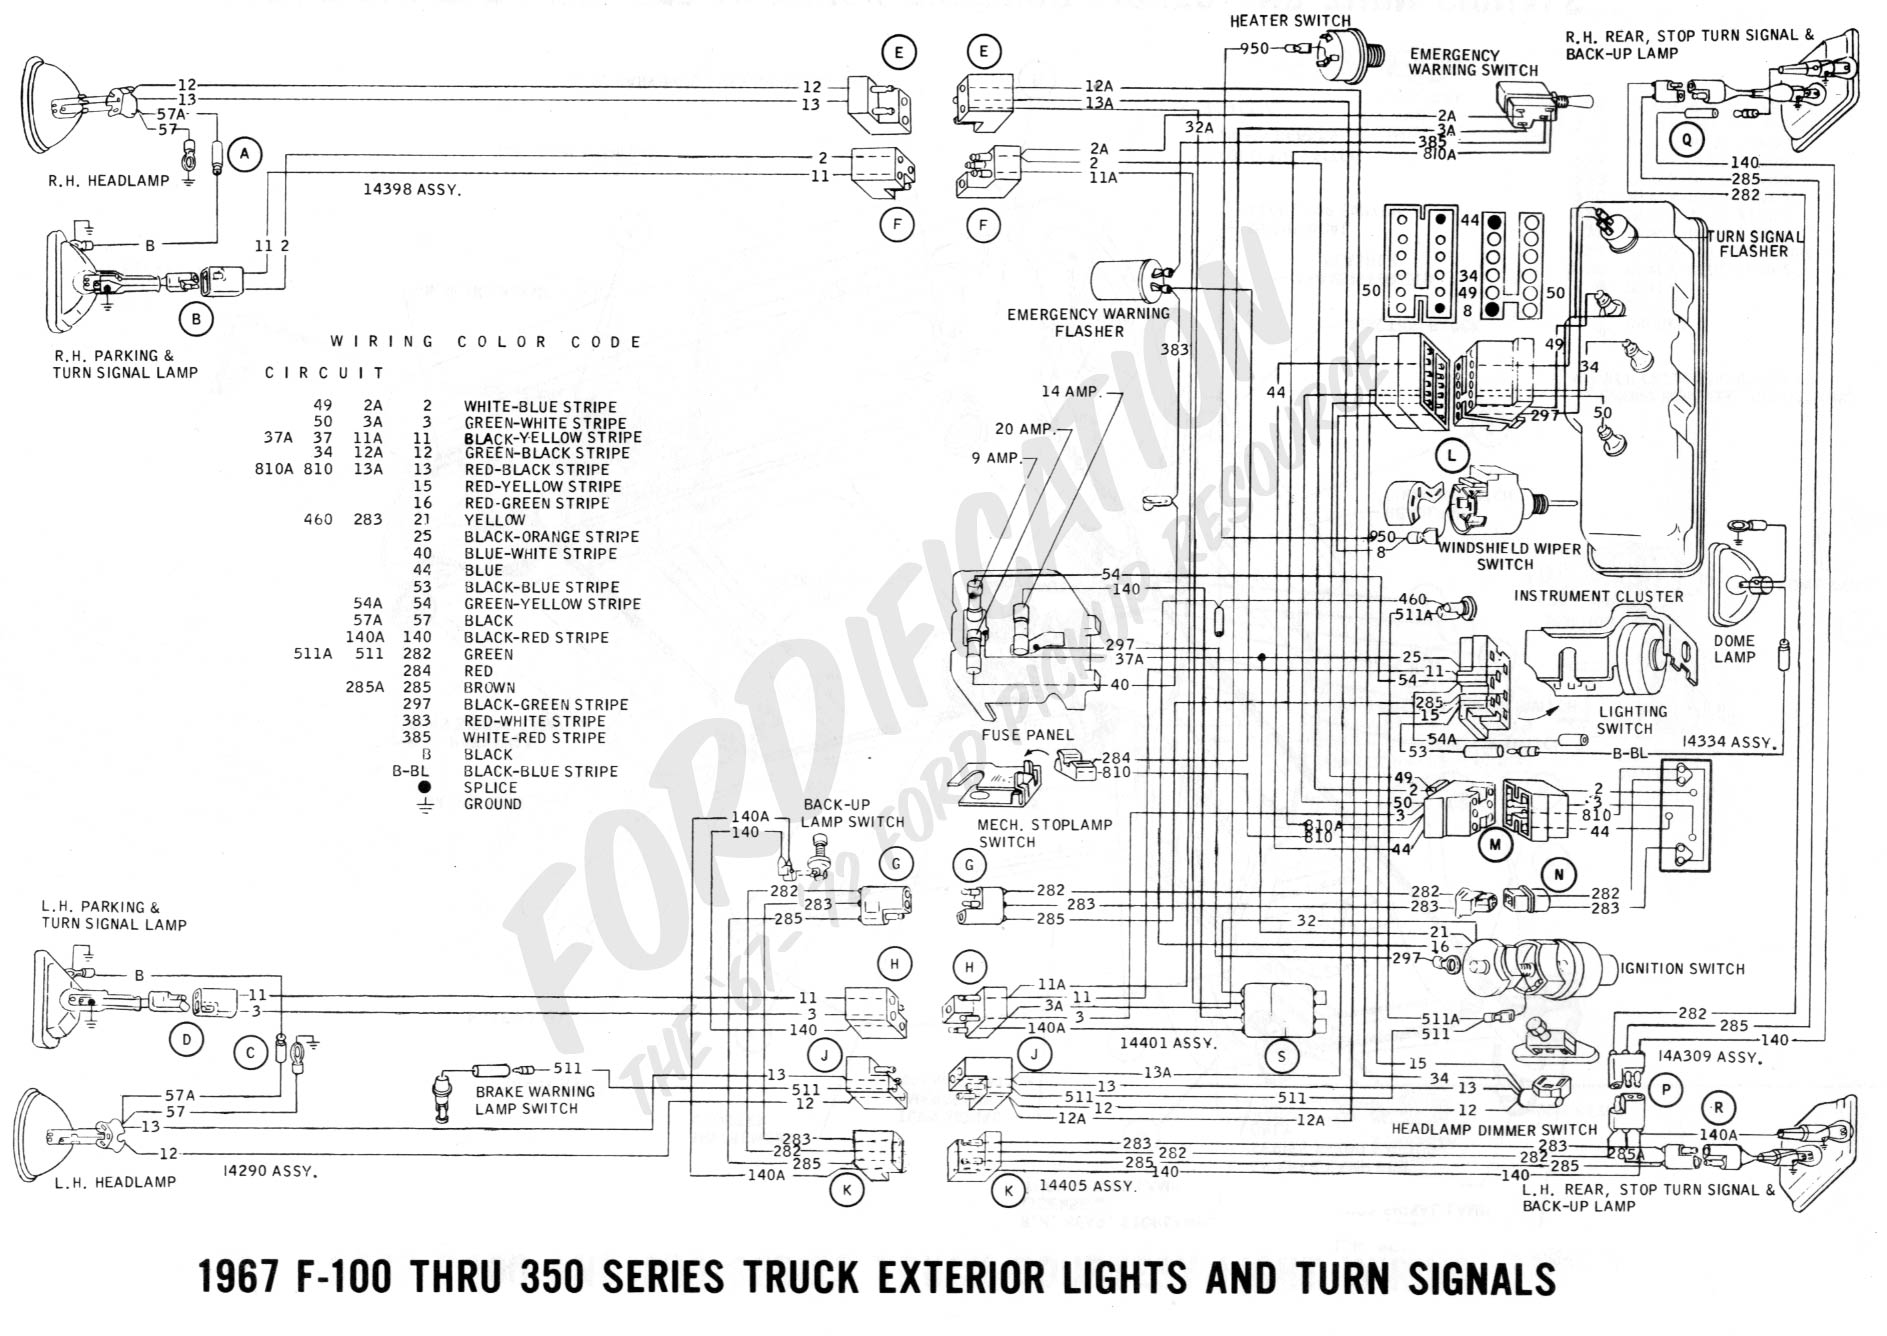 2002 ford f 350 fuse box diagram 2001 ford f250 fuse panel diagram 2001 image 2001 ford f250 4x4 wiring diagram 2001 discover